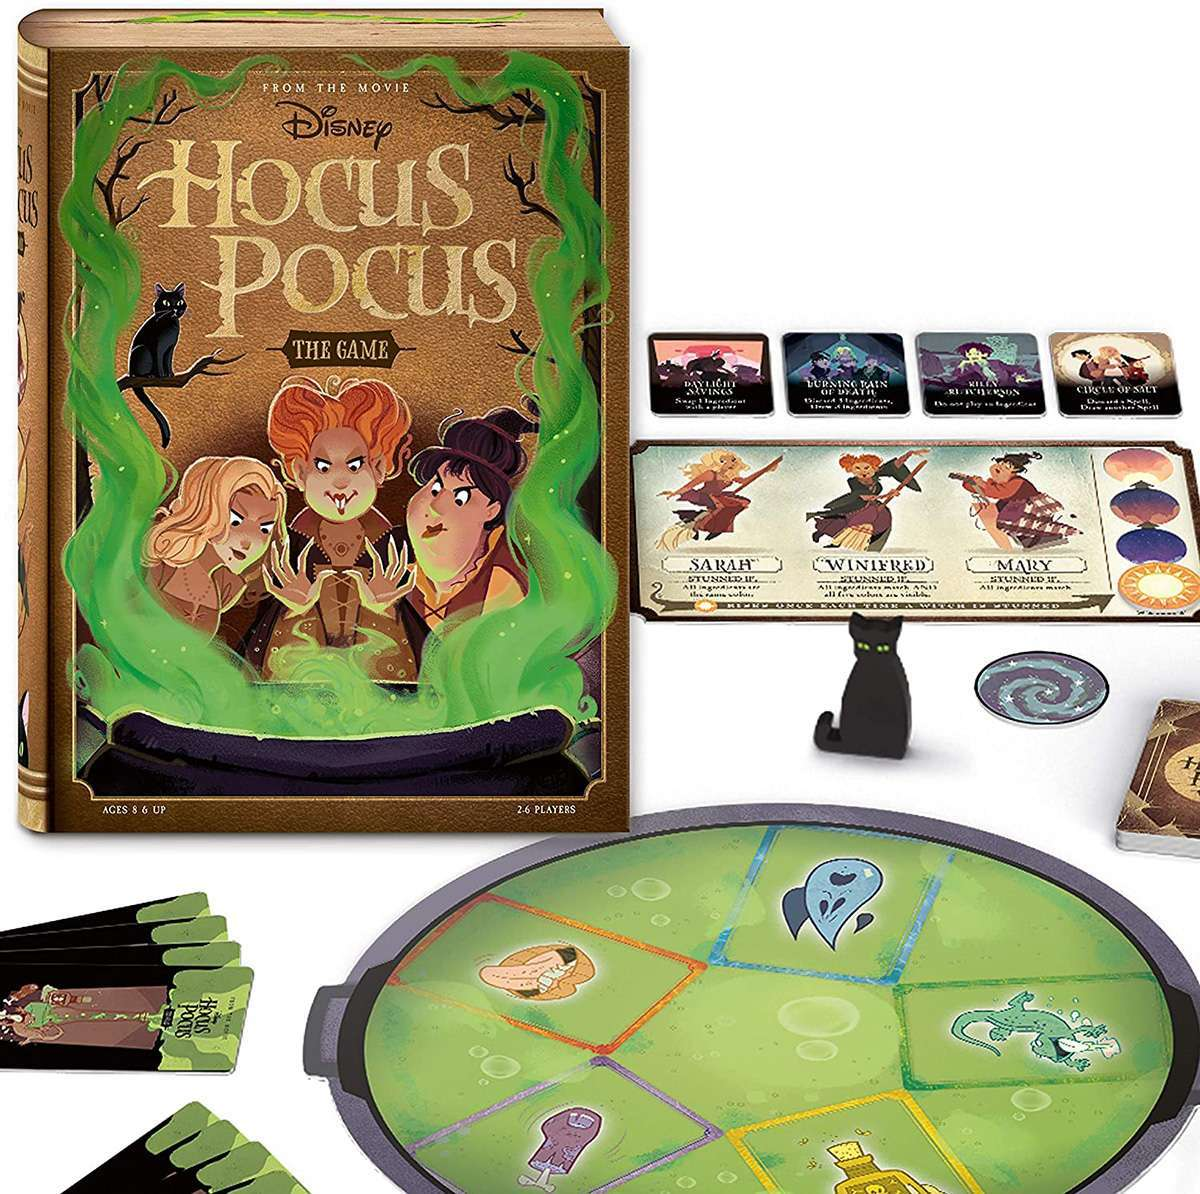 hocus-pocus-board-game